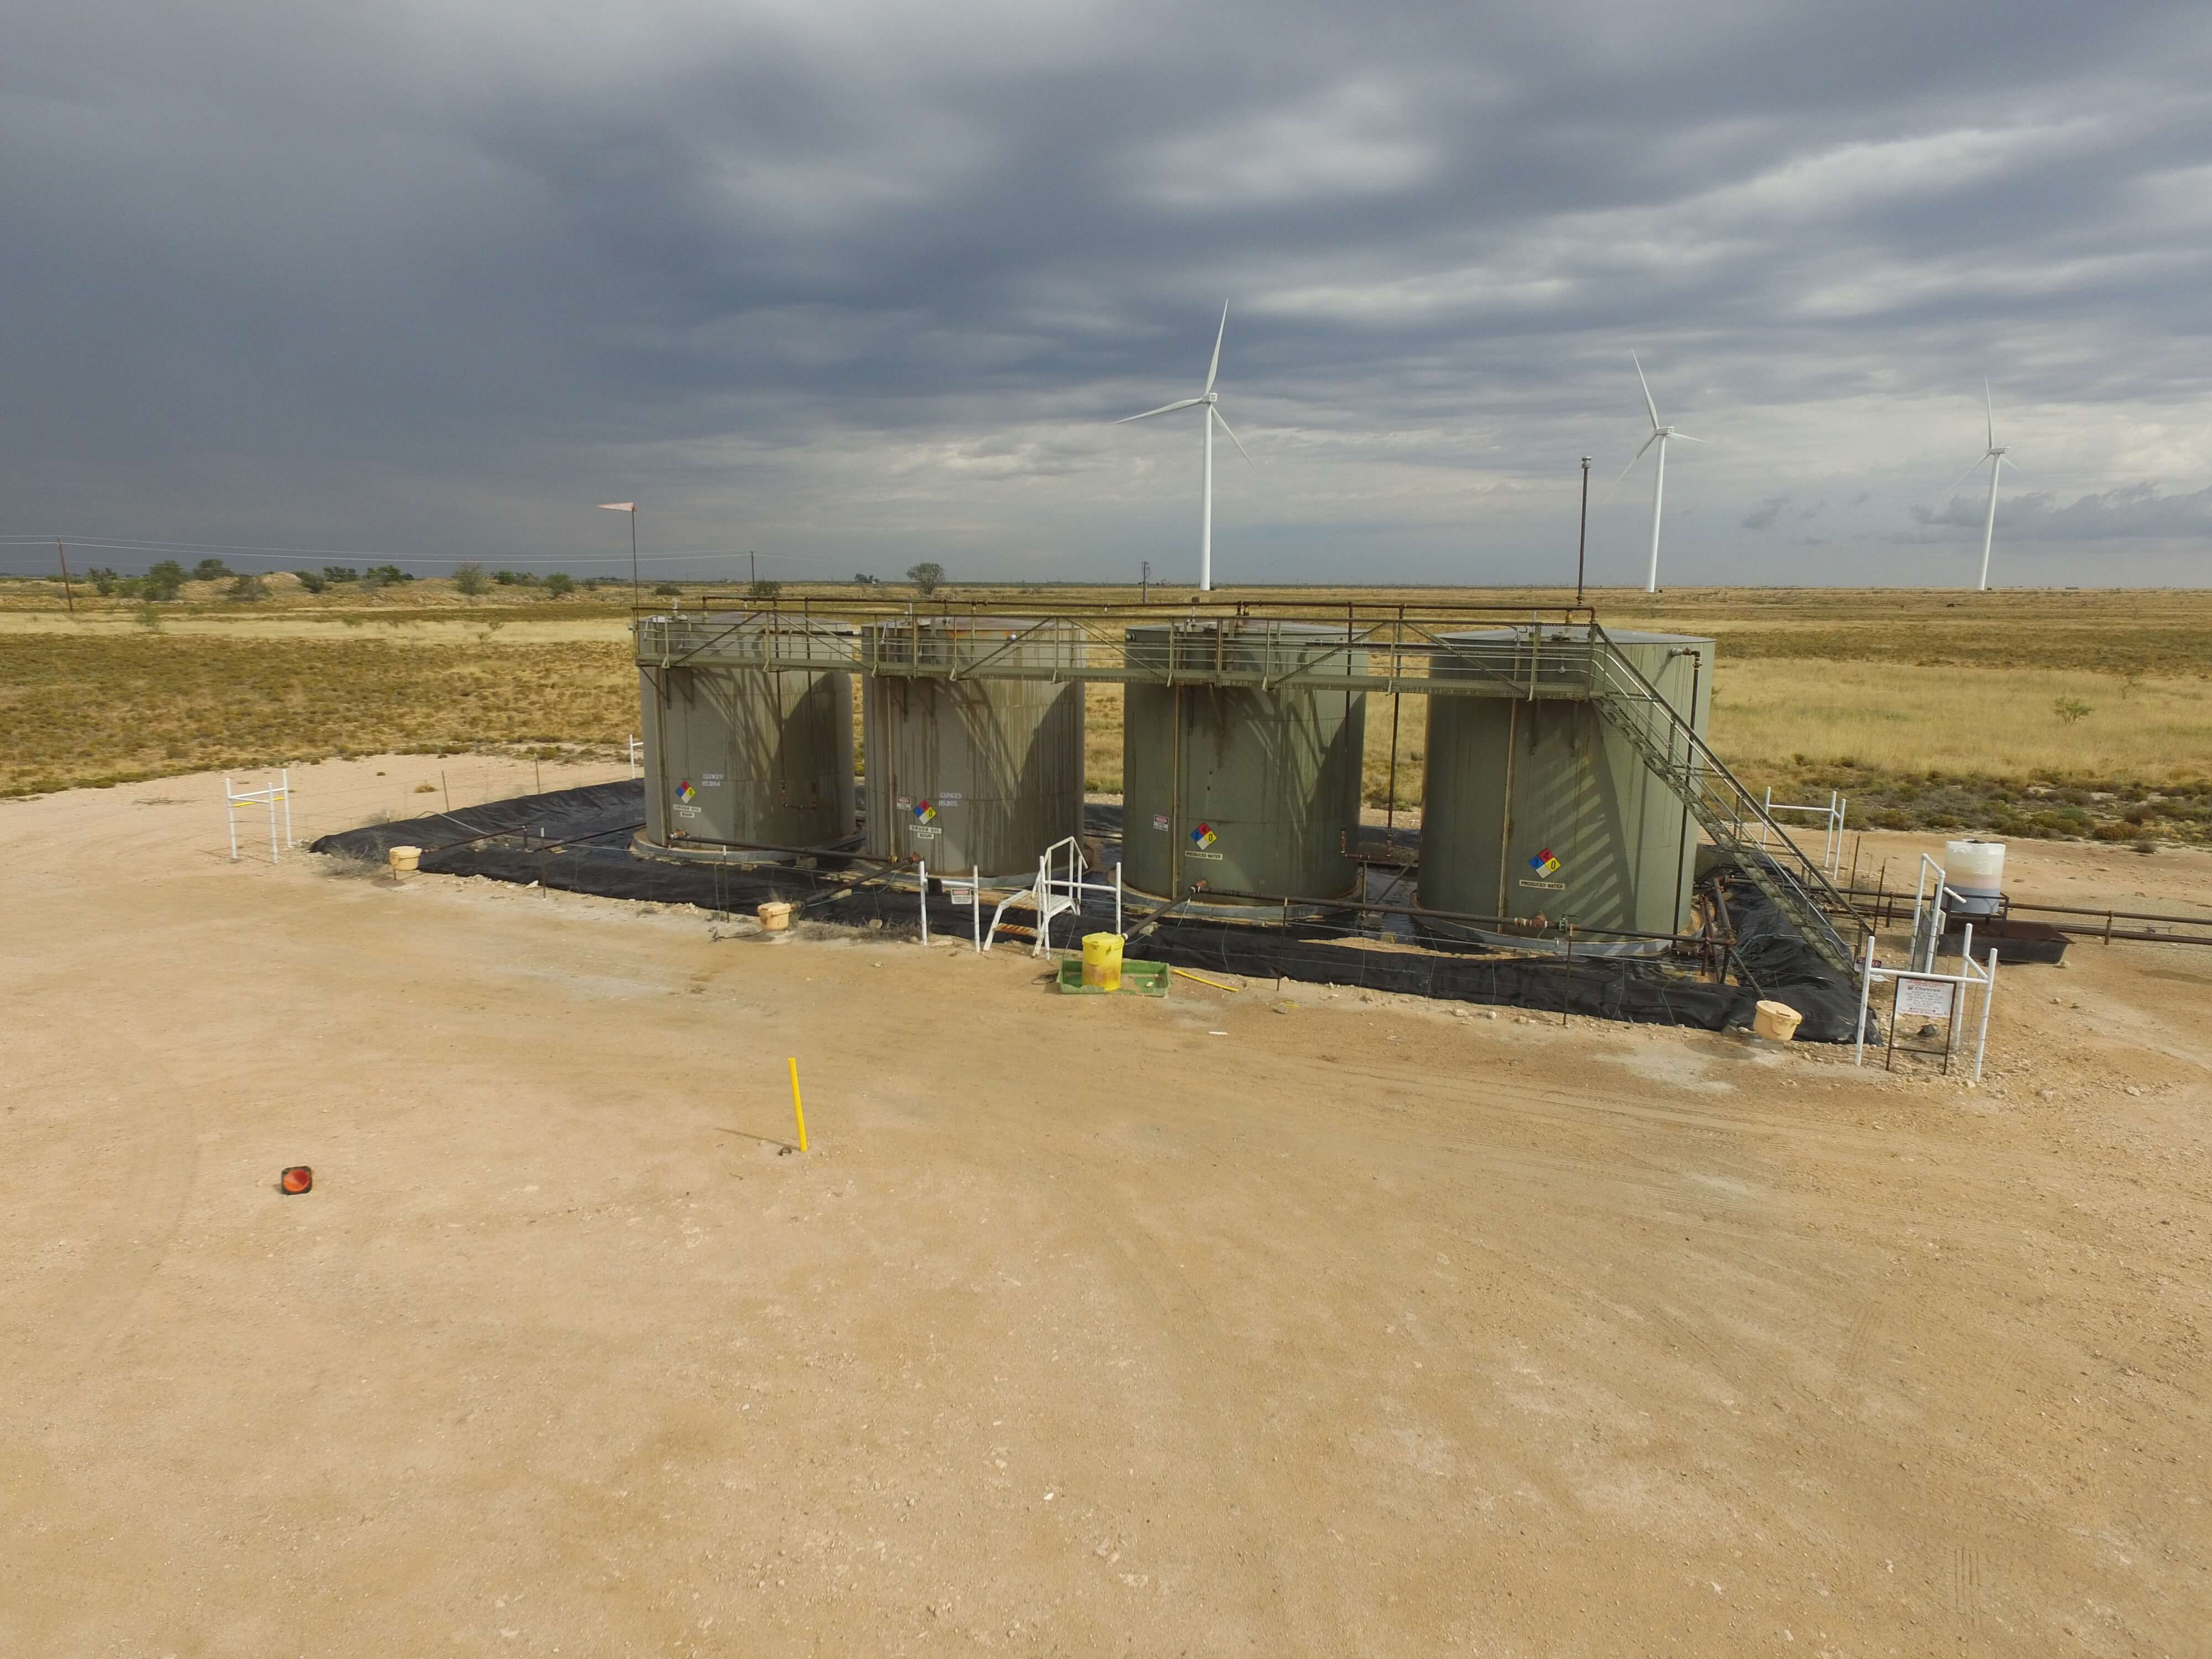 Drone-oil-and-wind farm-inspection